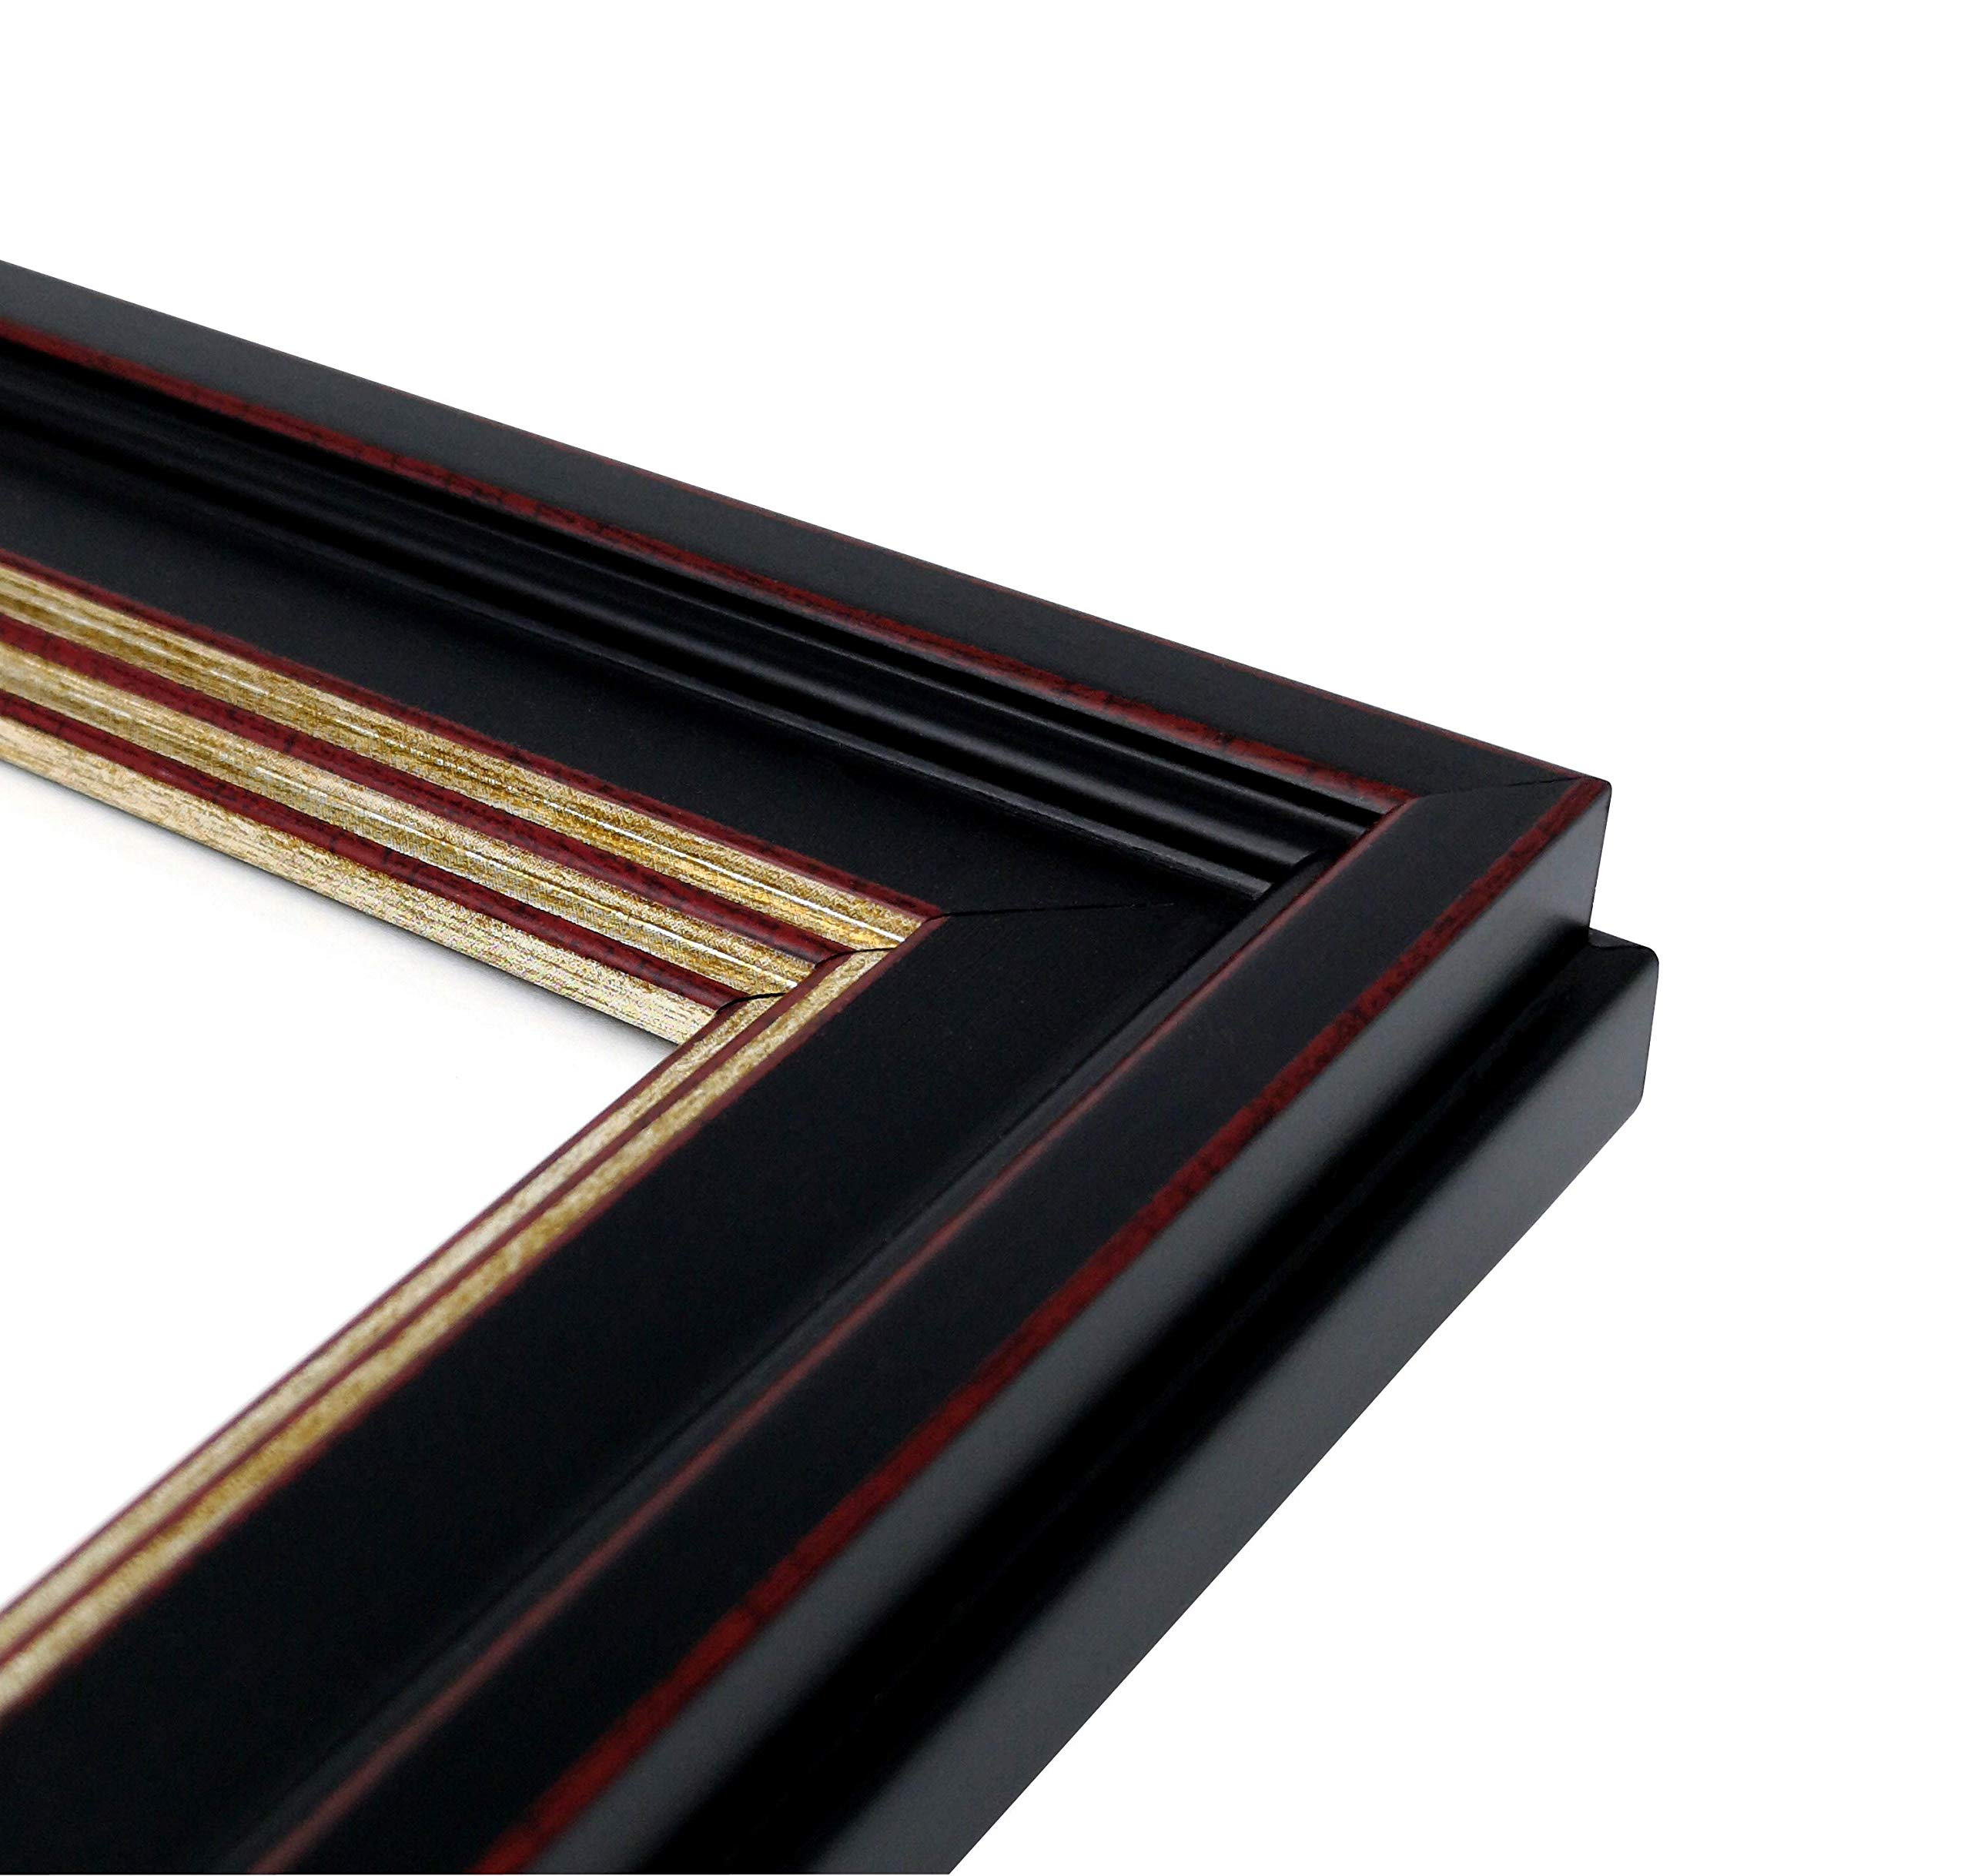 Onuri Inc - Luxurious Document Frame (2-Pack) - Classic 8.5x11 Picture Frame for Diploma Documents and Certificates by Onuri Inc. (Image #4)